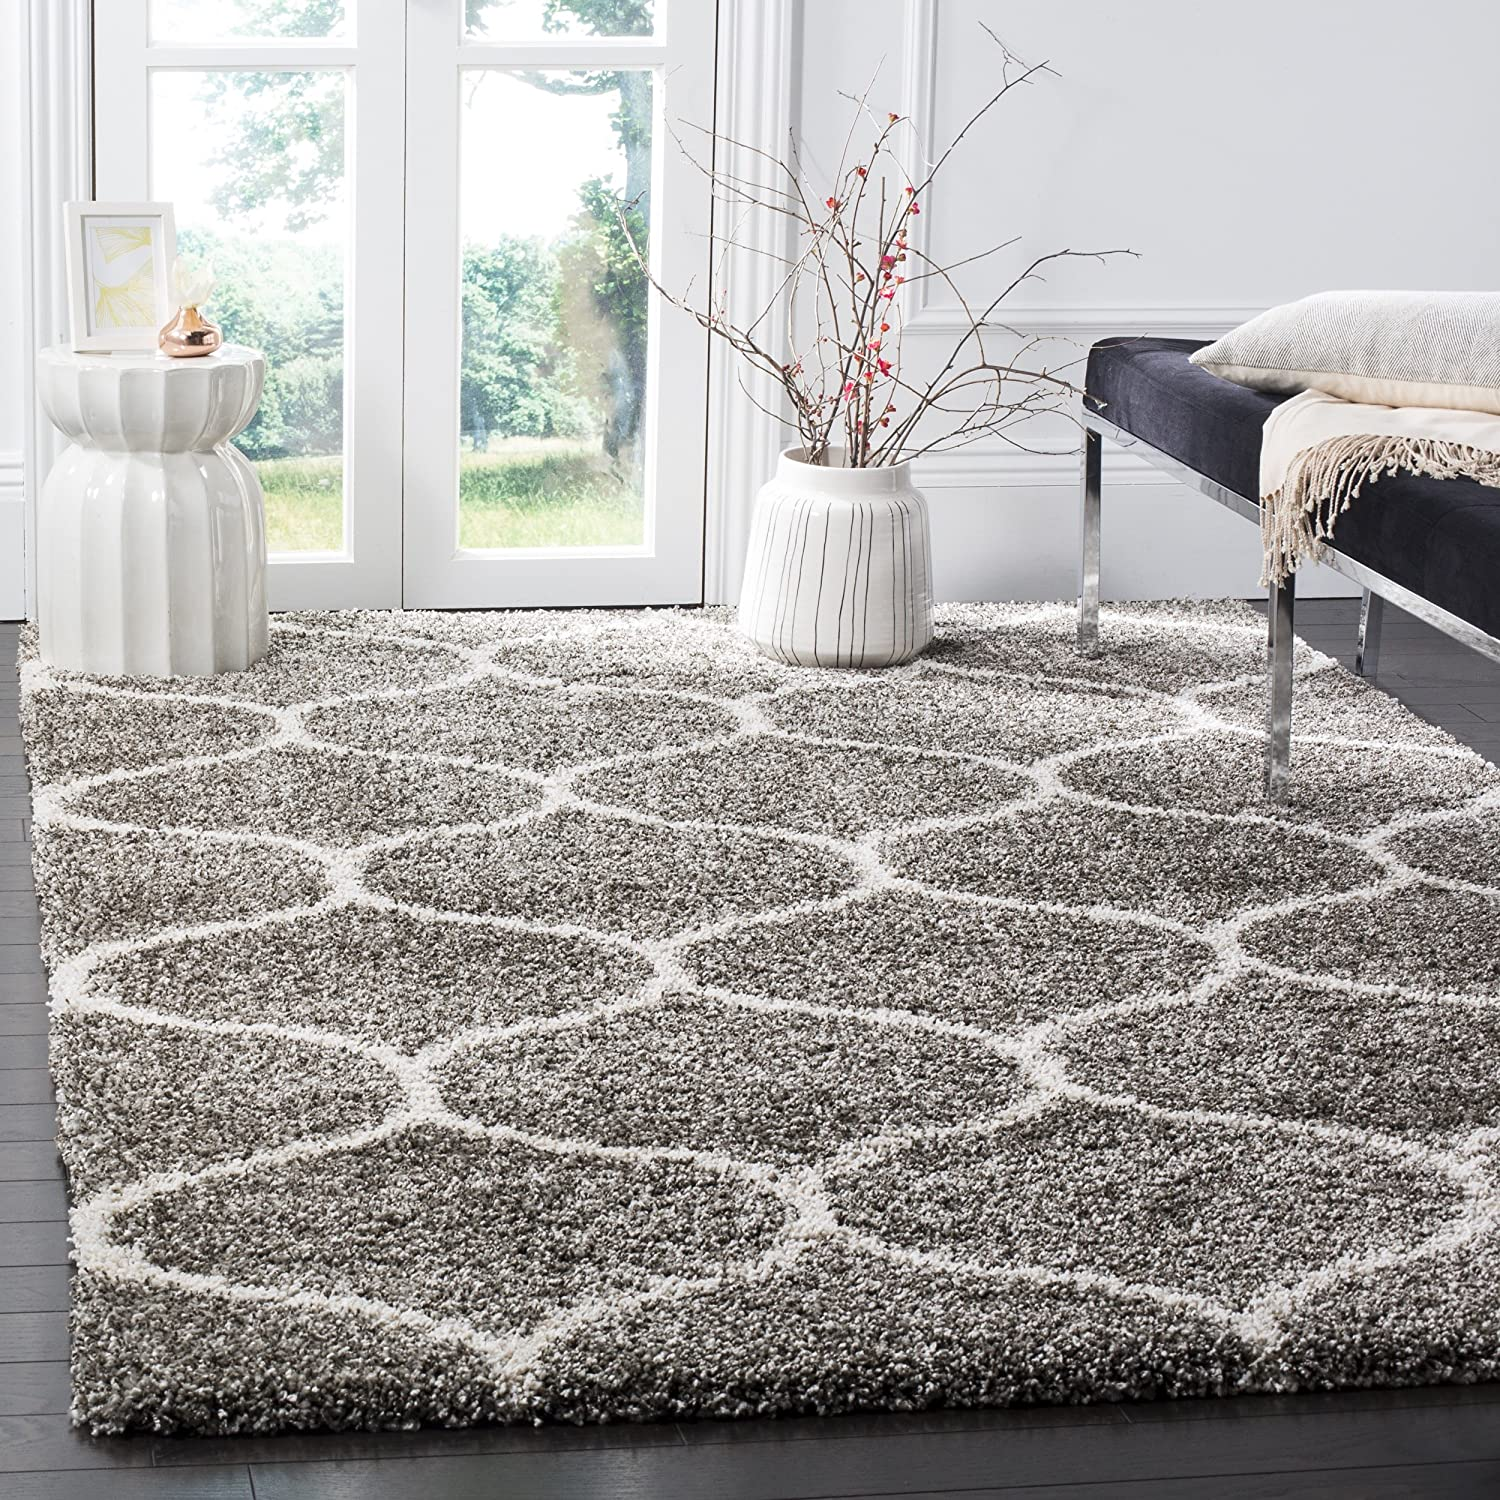 Top 5 Living Room Rugs: Buying Guide & Reviews 6